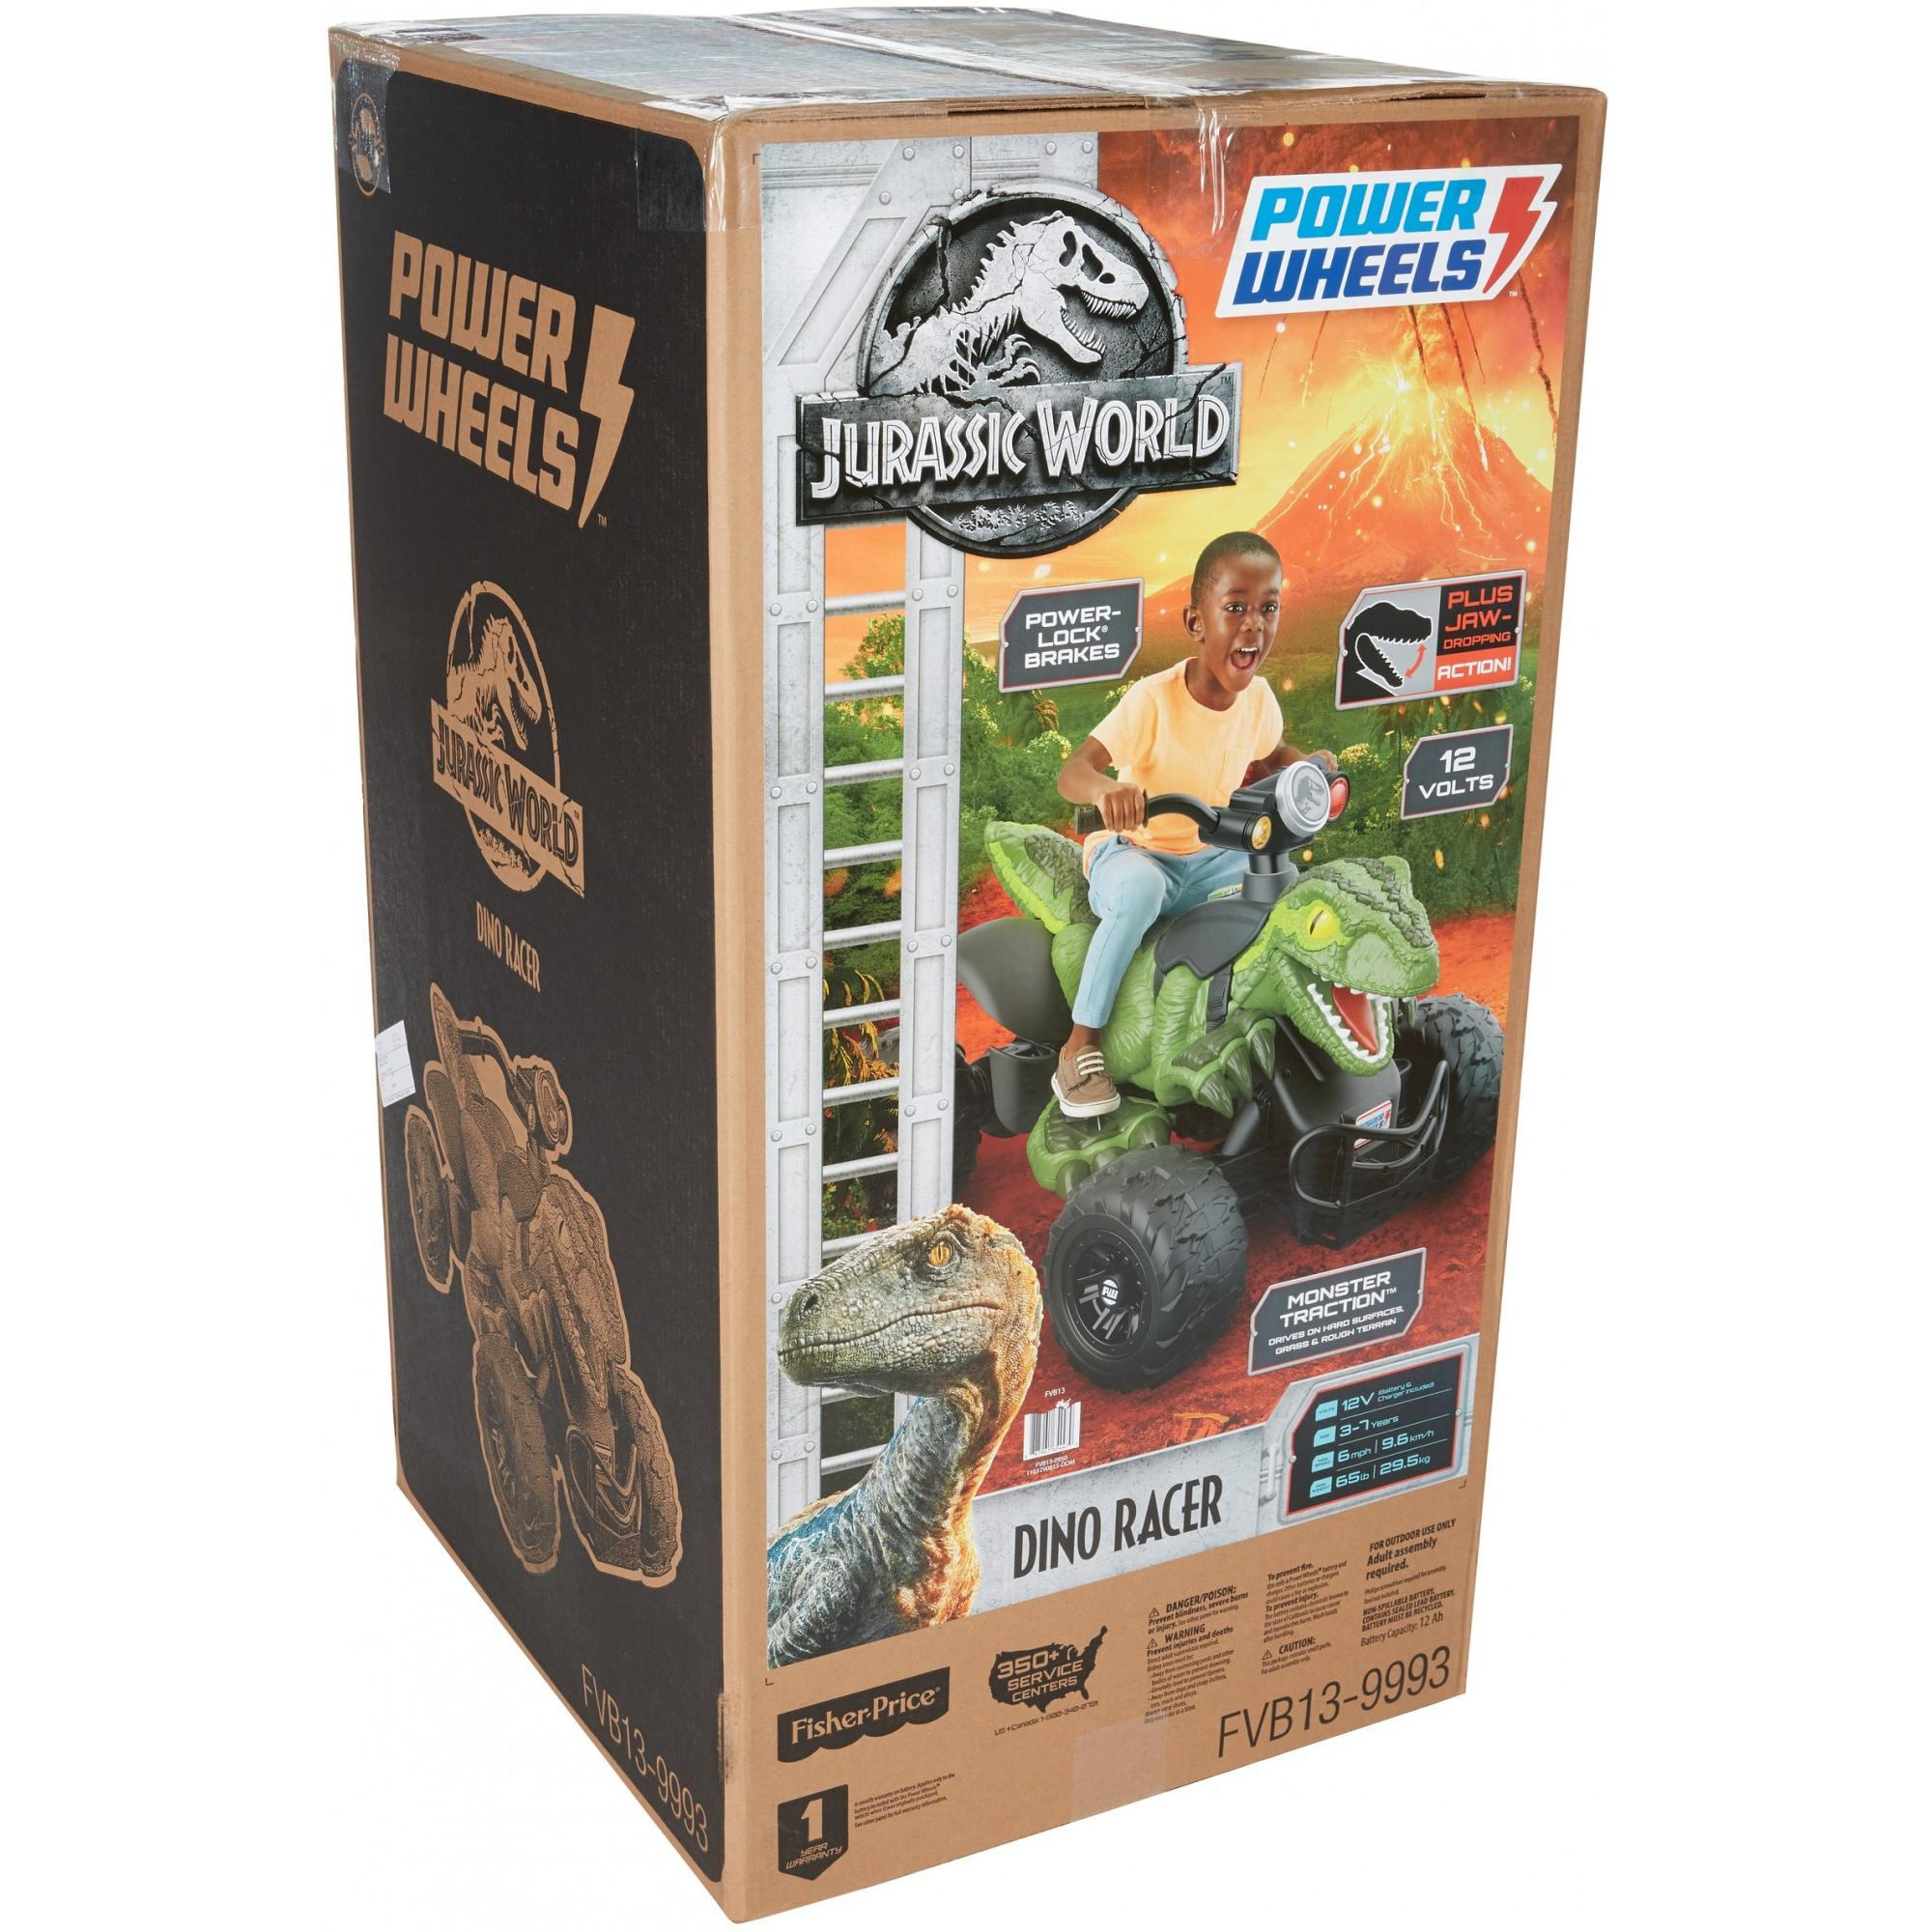 Power Wheels Jurassic World Dino Racer Green Ride On Atv For Kids Smart Car Parts